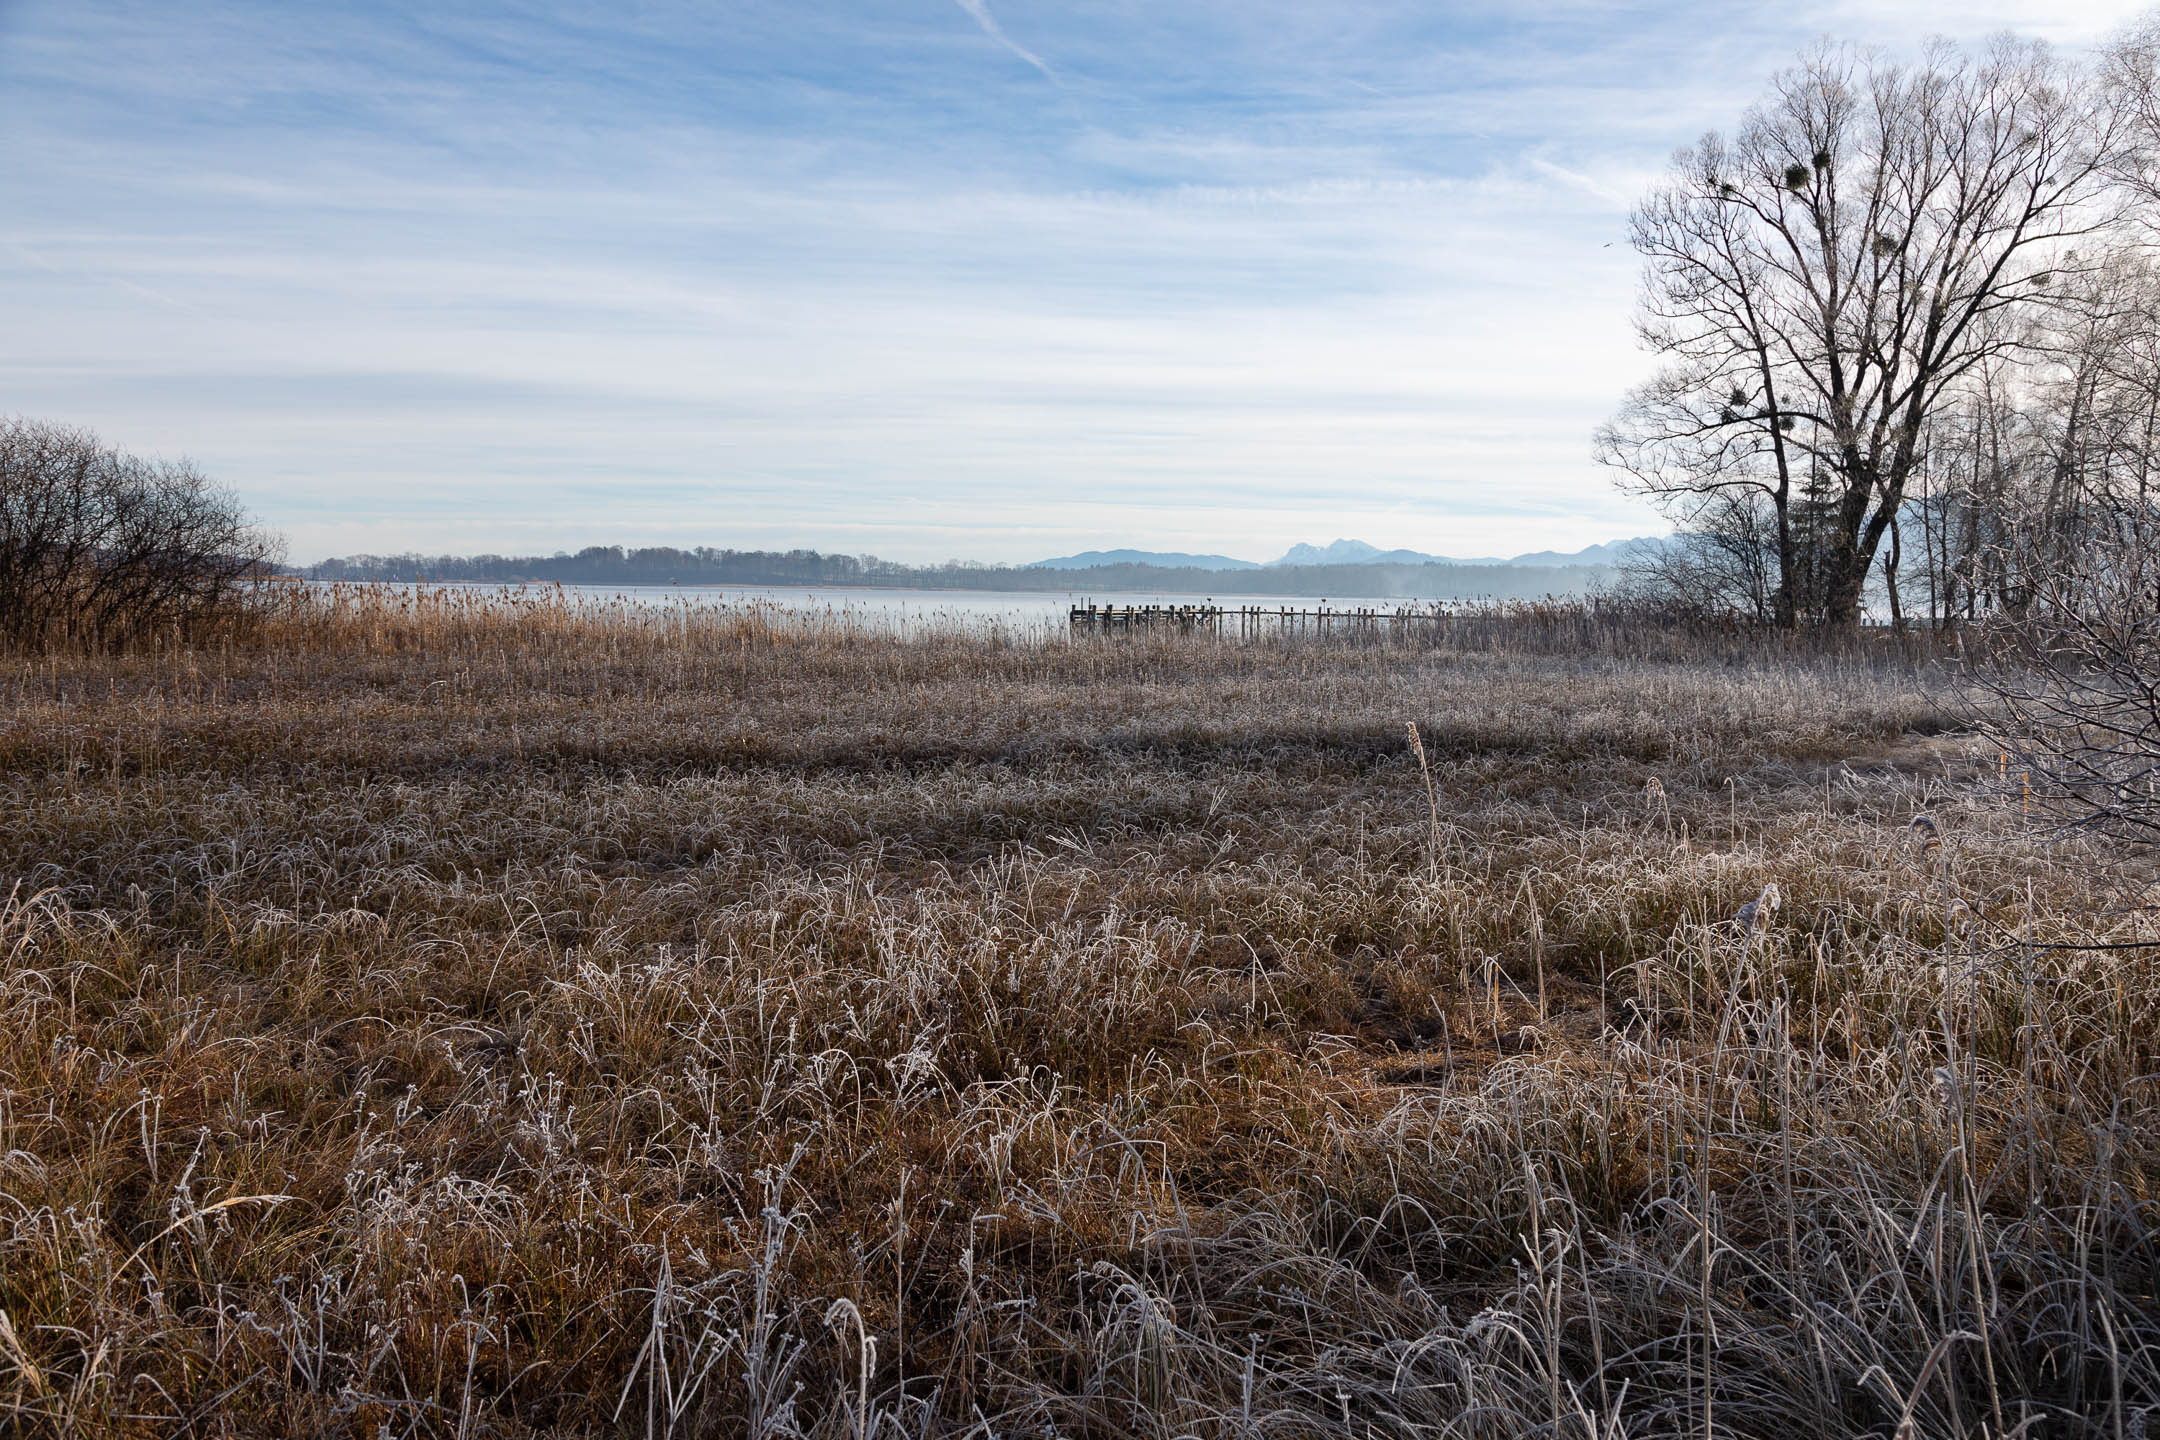 FrozenGrassLakeChimseeGermany12.26.18copy